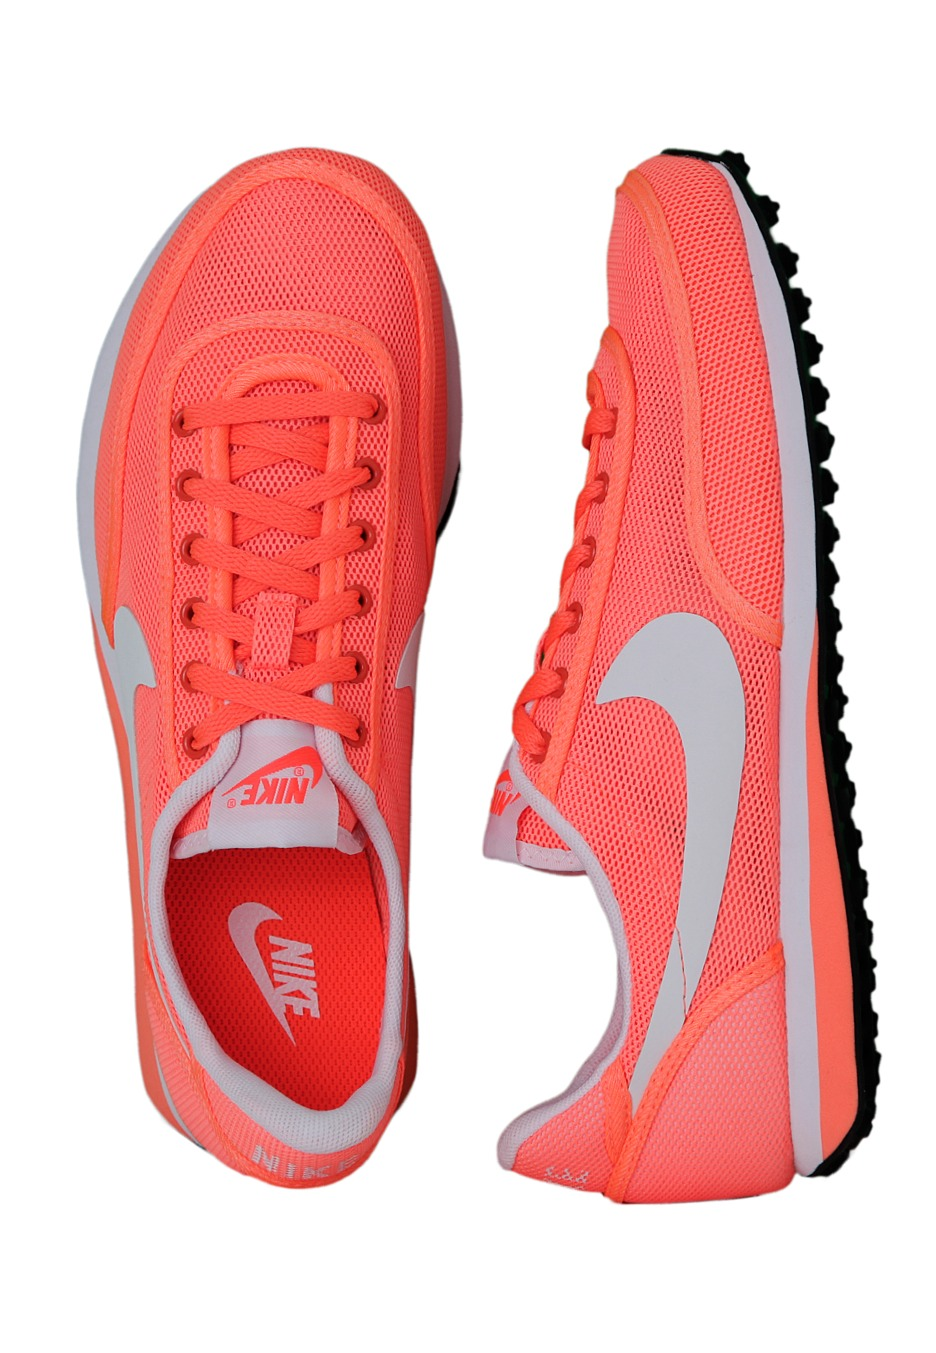 designer fashion 7e70e 1ec0d Nike - Elite Tape Total CrimsonWhiteBlackBright Mango - Girl Shoes -  Impericon.com UK